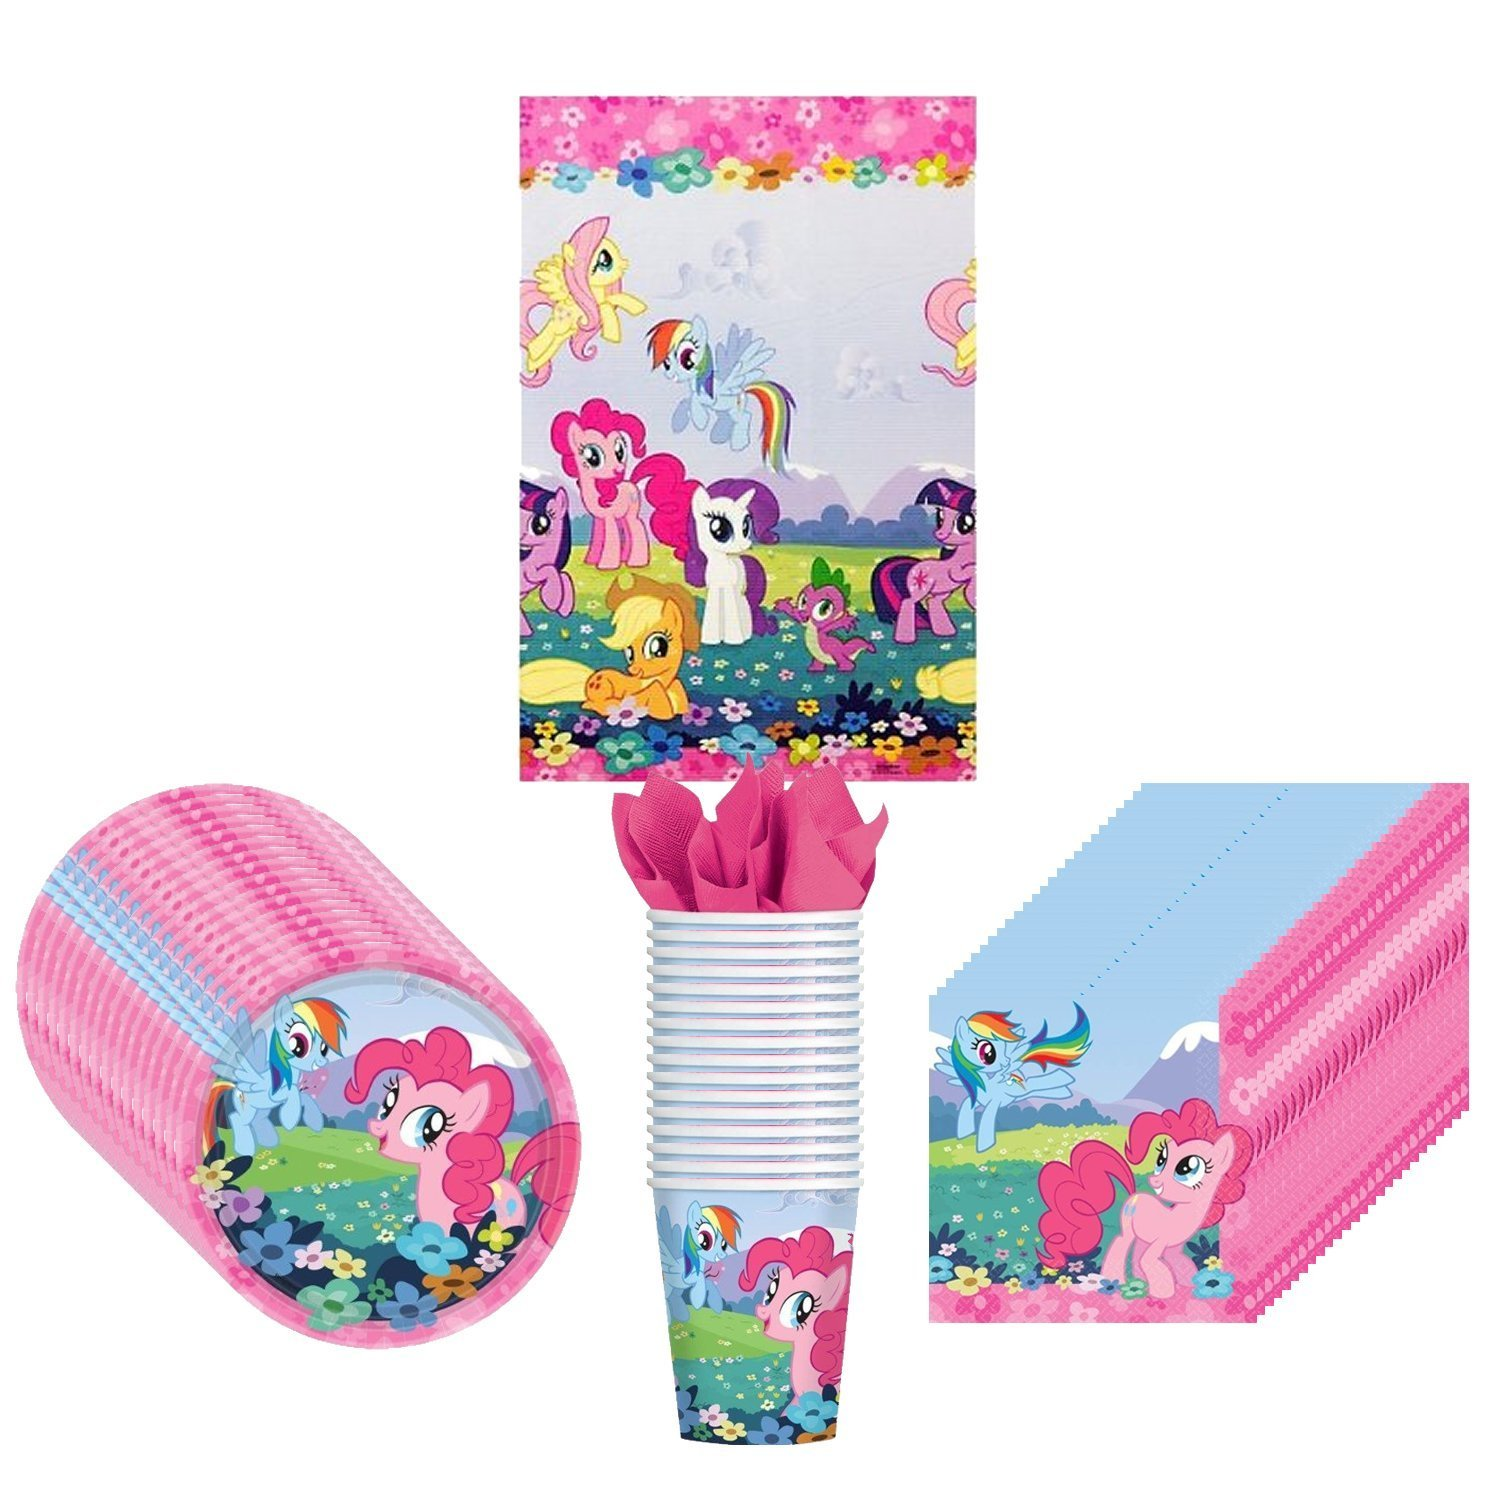 My Little Pony Friendship Party Supplies Pack Including Plates, Cups, Napkins and Tablecover - 16 Guests